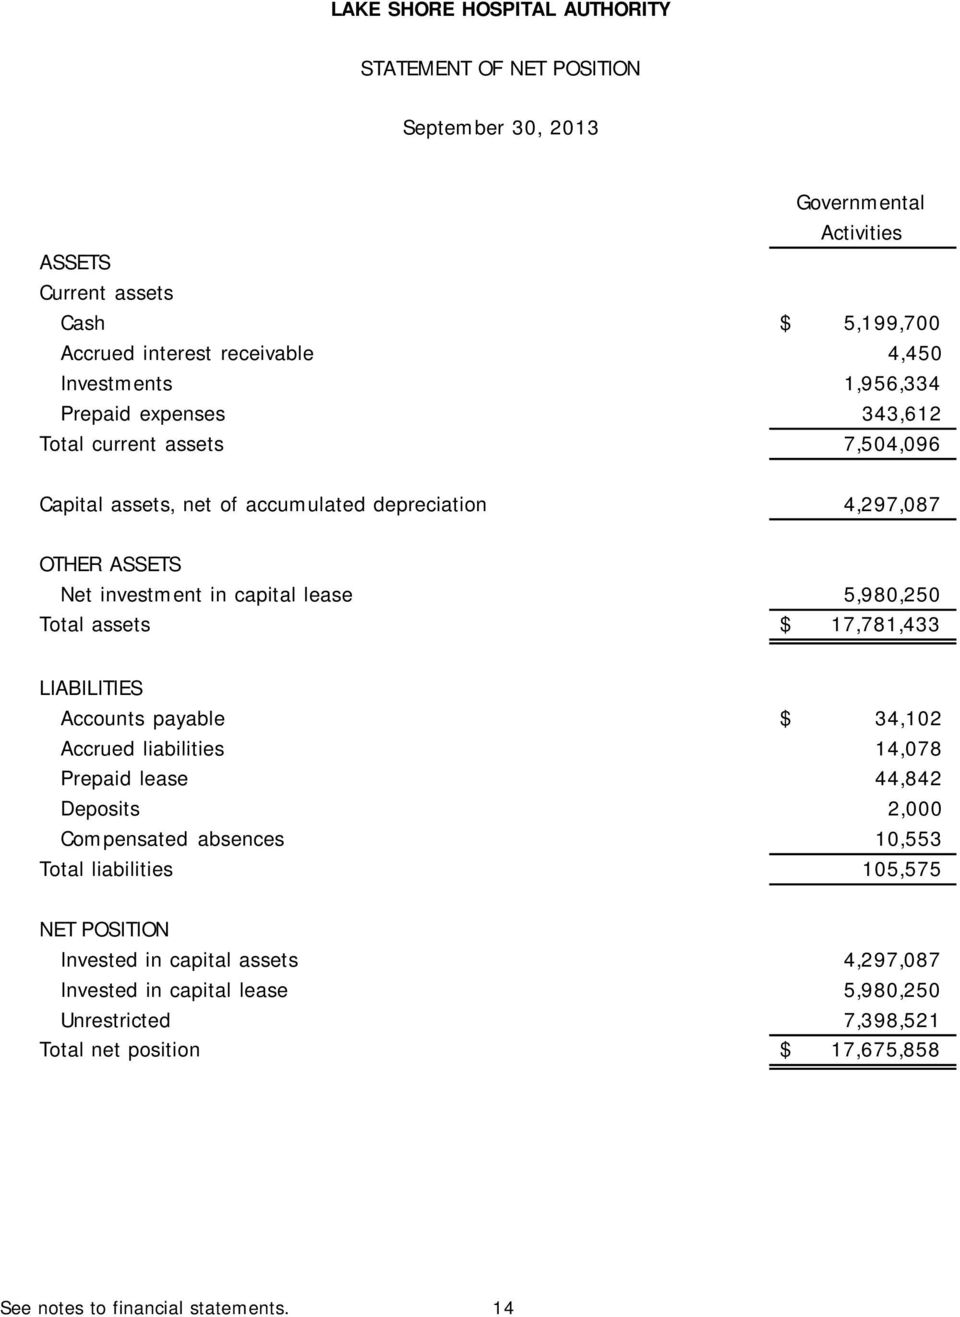 5,980,250 Total assets $ 17,781,433 LIABILITIES Accounts payable $ 34,102 Accrued liabilities 14,078 Prepaid lease 44,842 Deposits 2,000 Compensated absences 10,553 Total